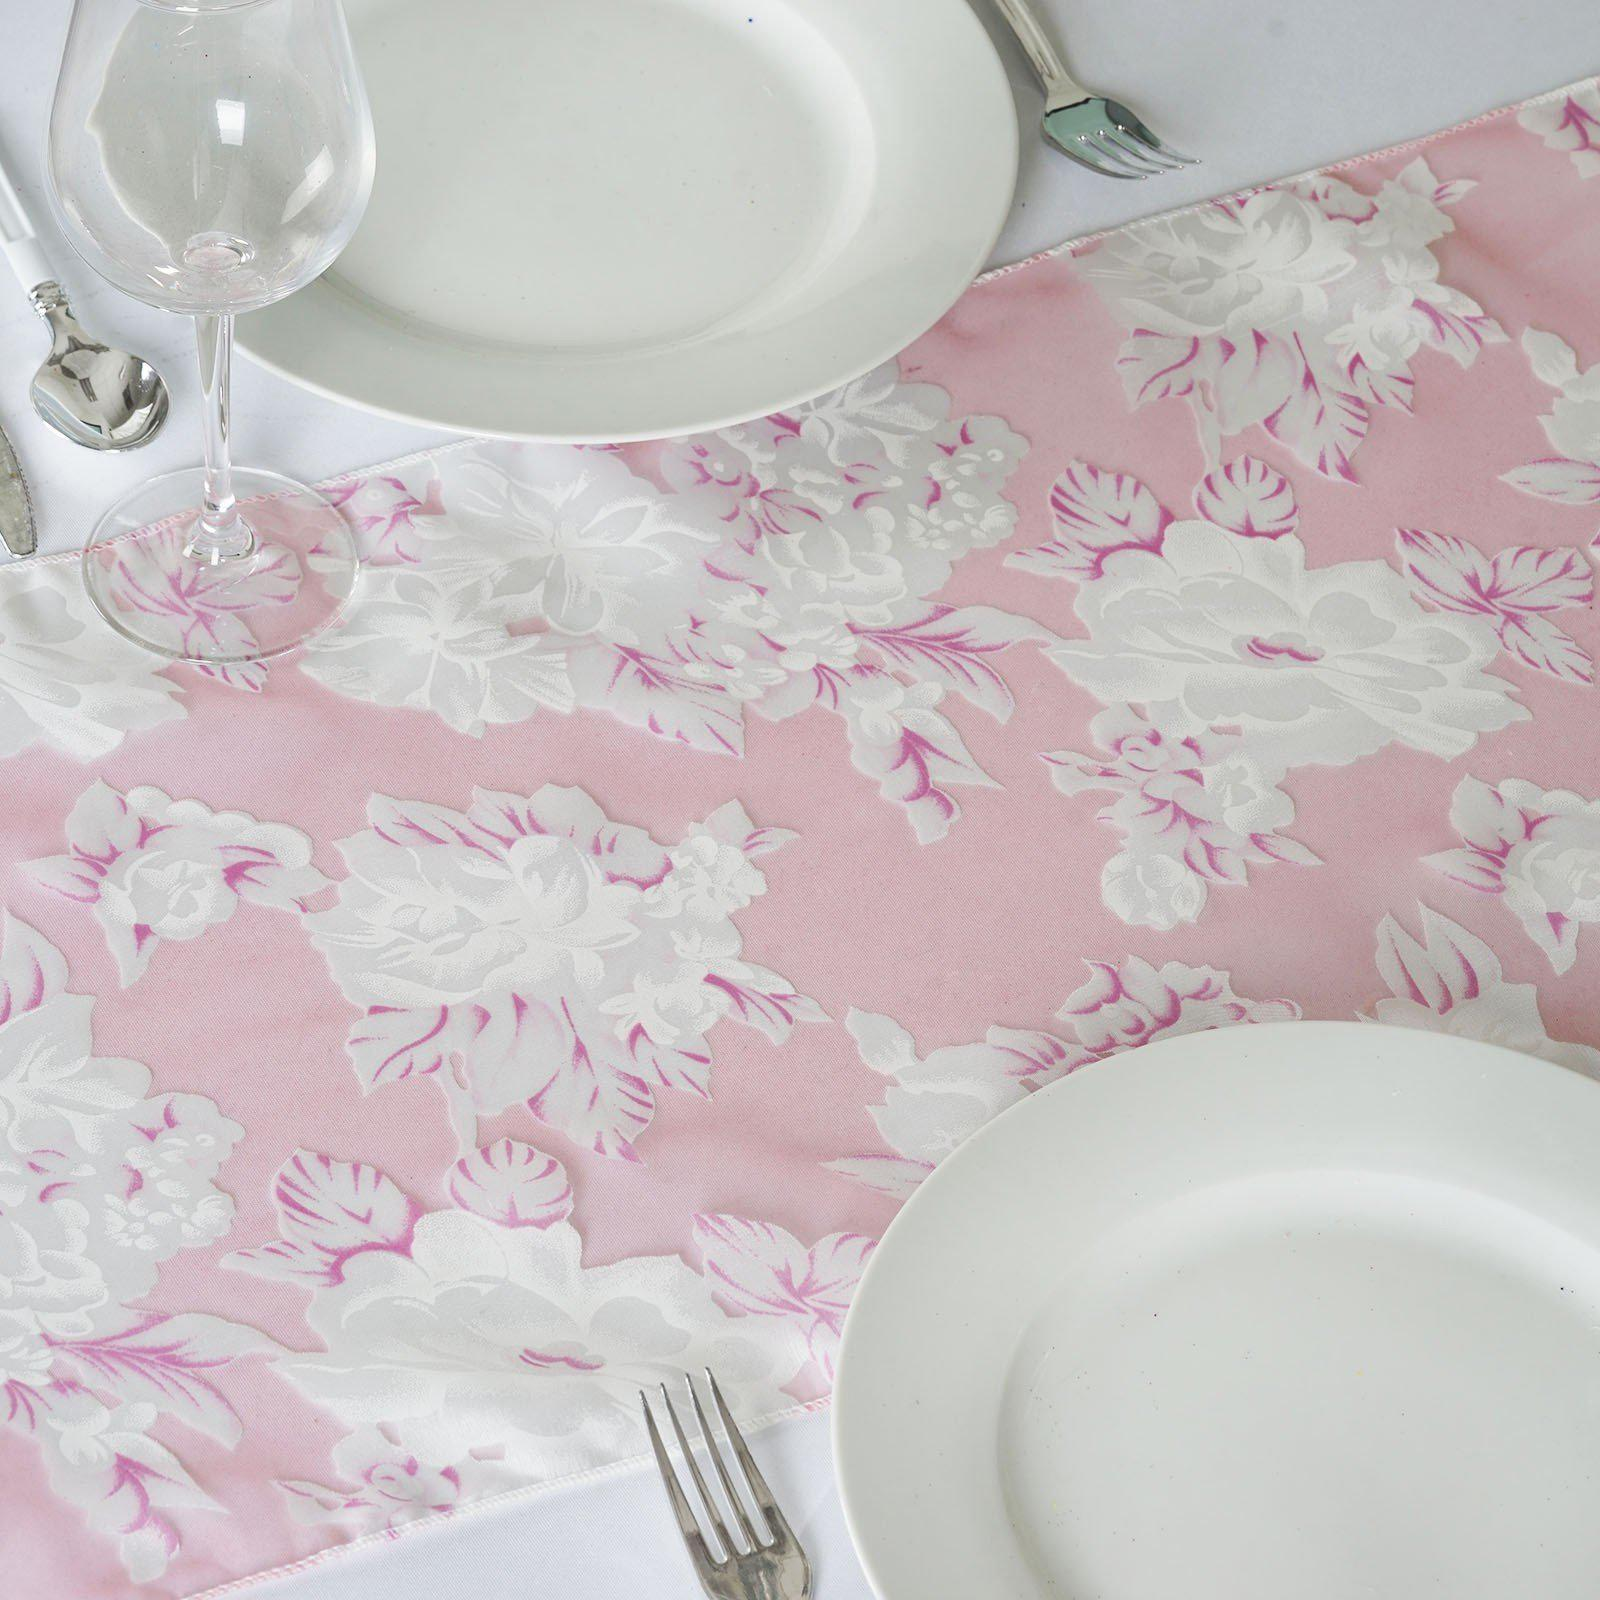 Pink Sheer Organza Table Runner With Floral Design Tablecloths